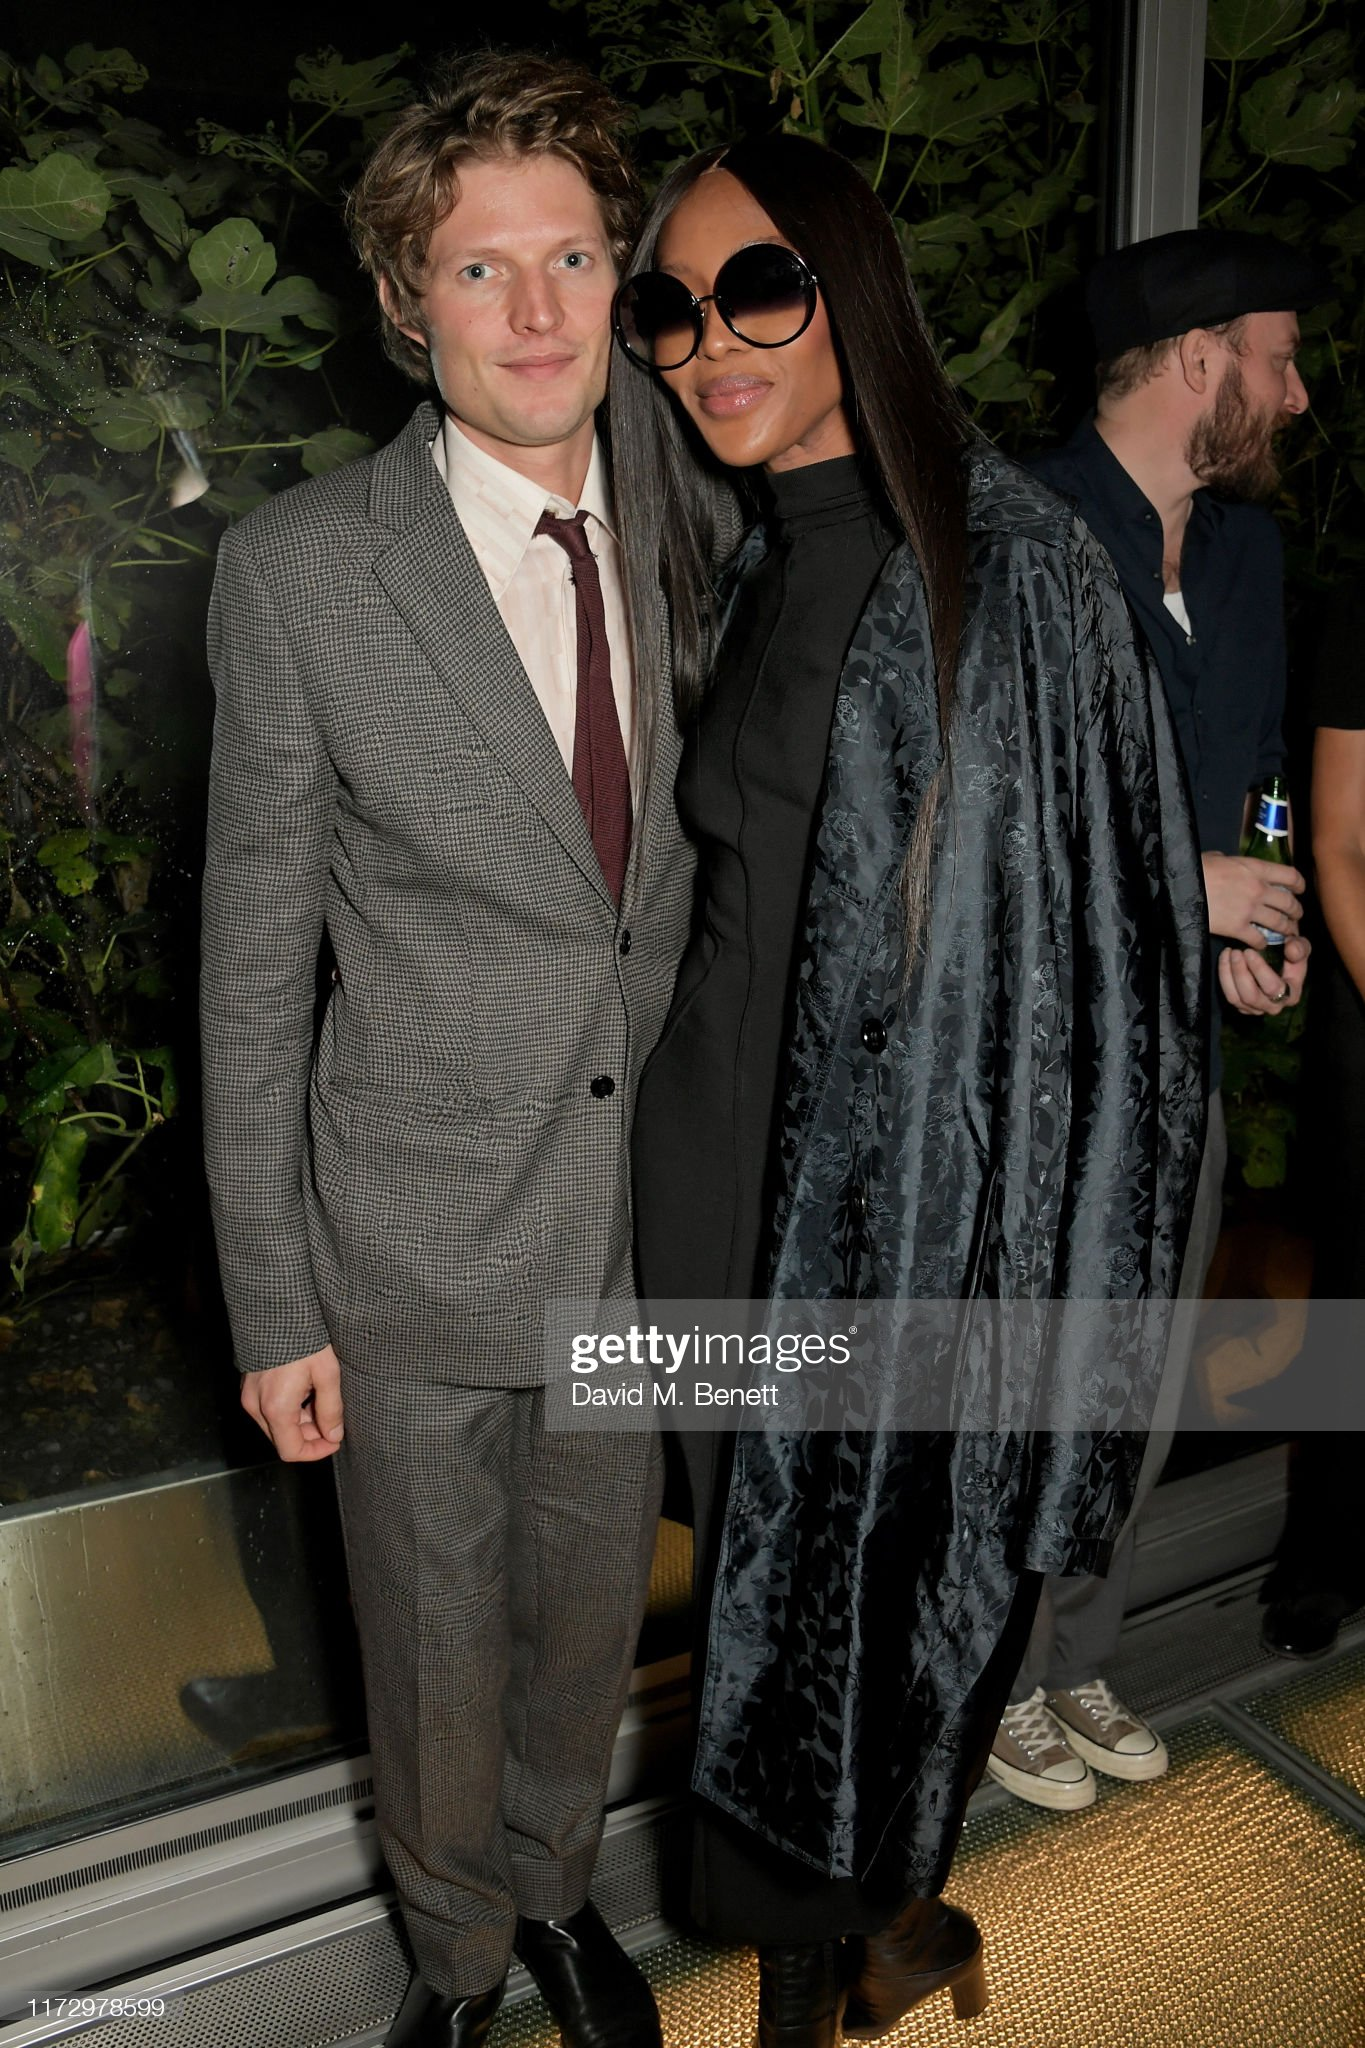 https://media.gettyimages.com/photos/nikolai-von-bismarck-and-naomi-campbell-attend-the-dior-sessions-book-picture-id1172978599?s=2048x2048